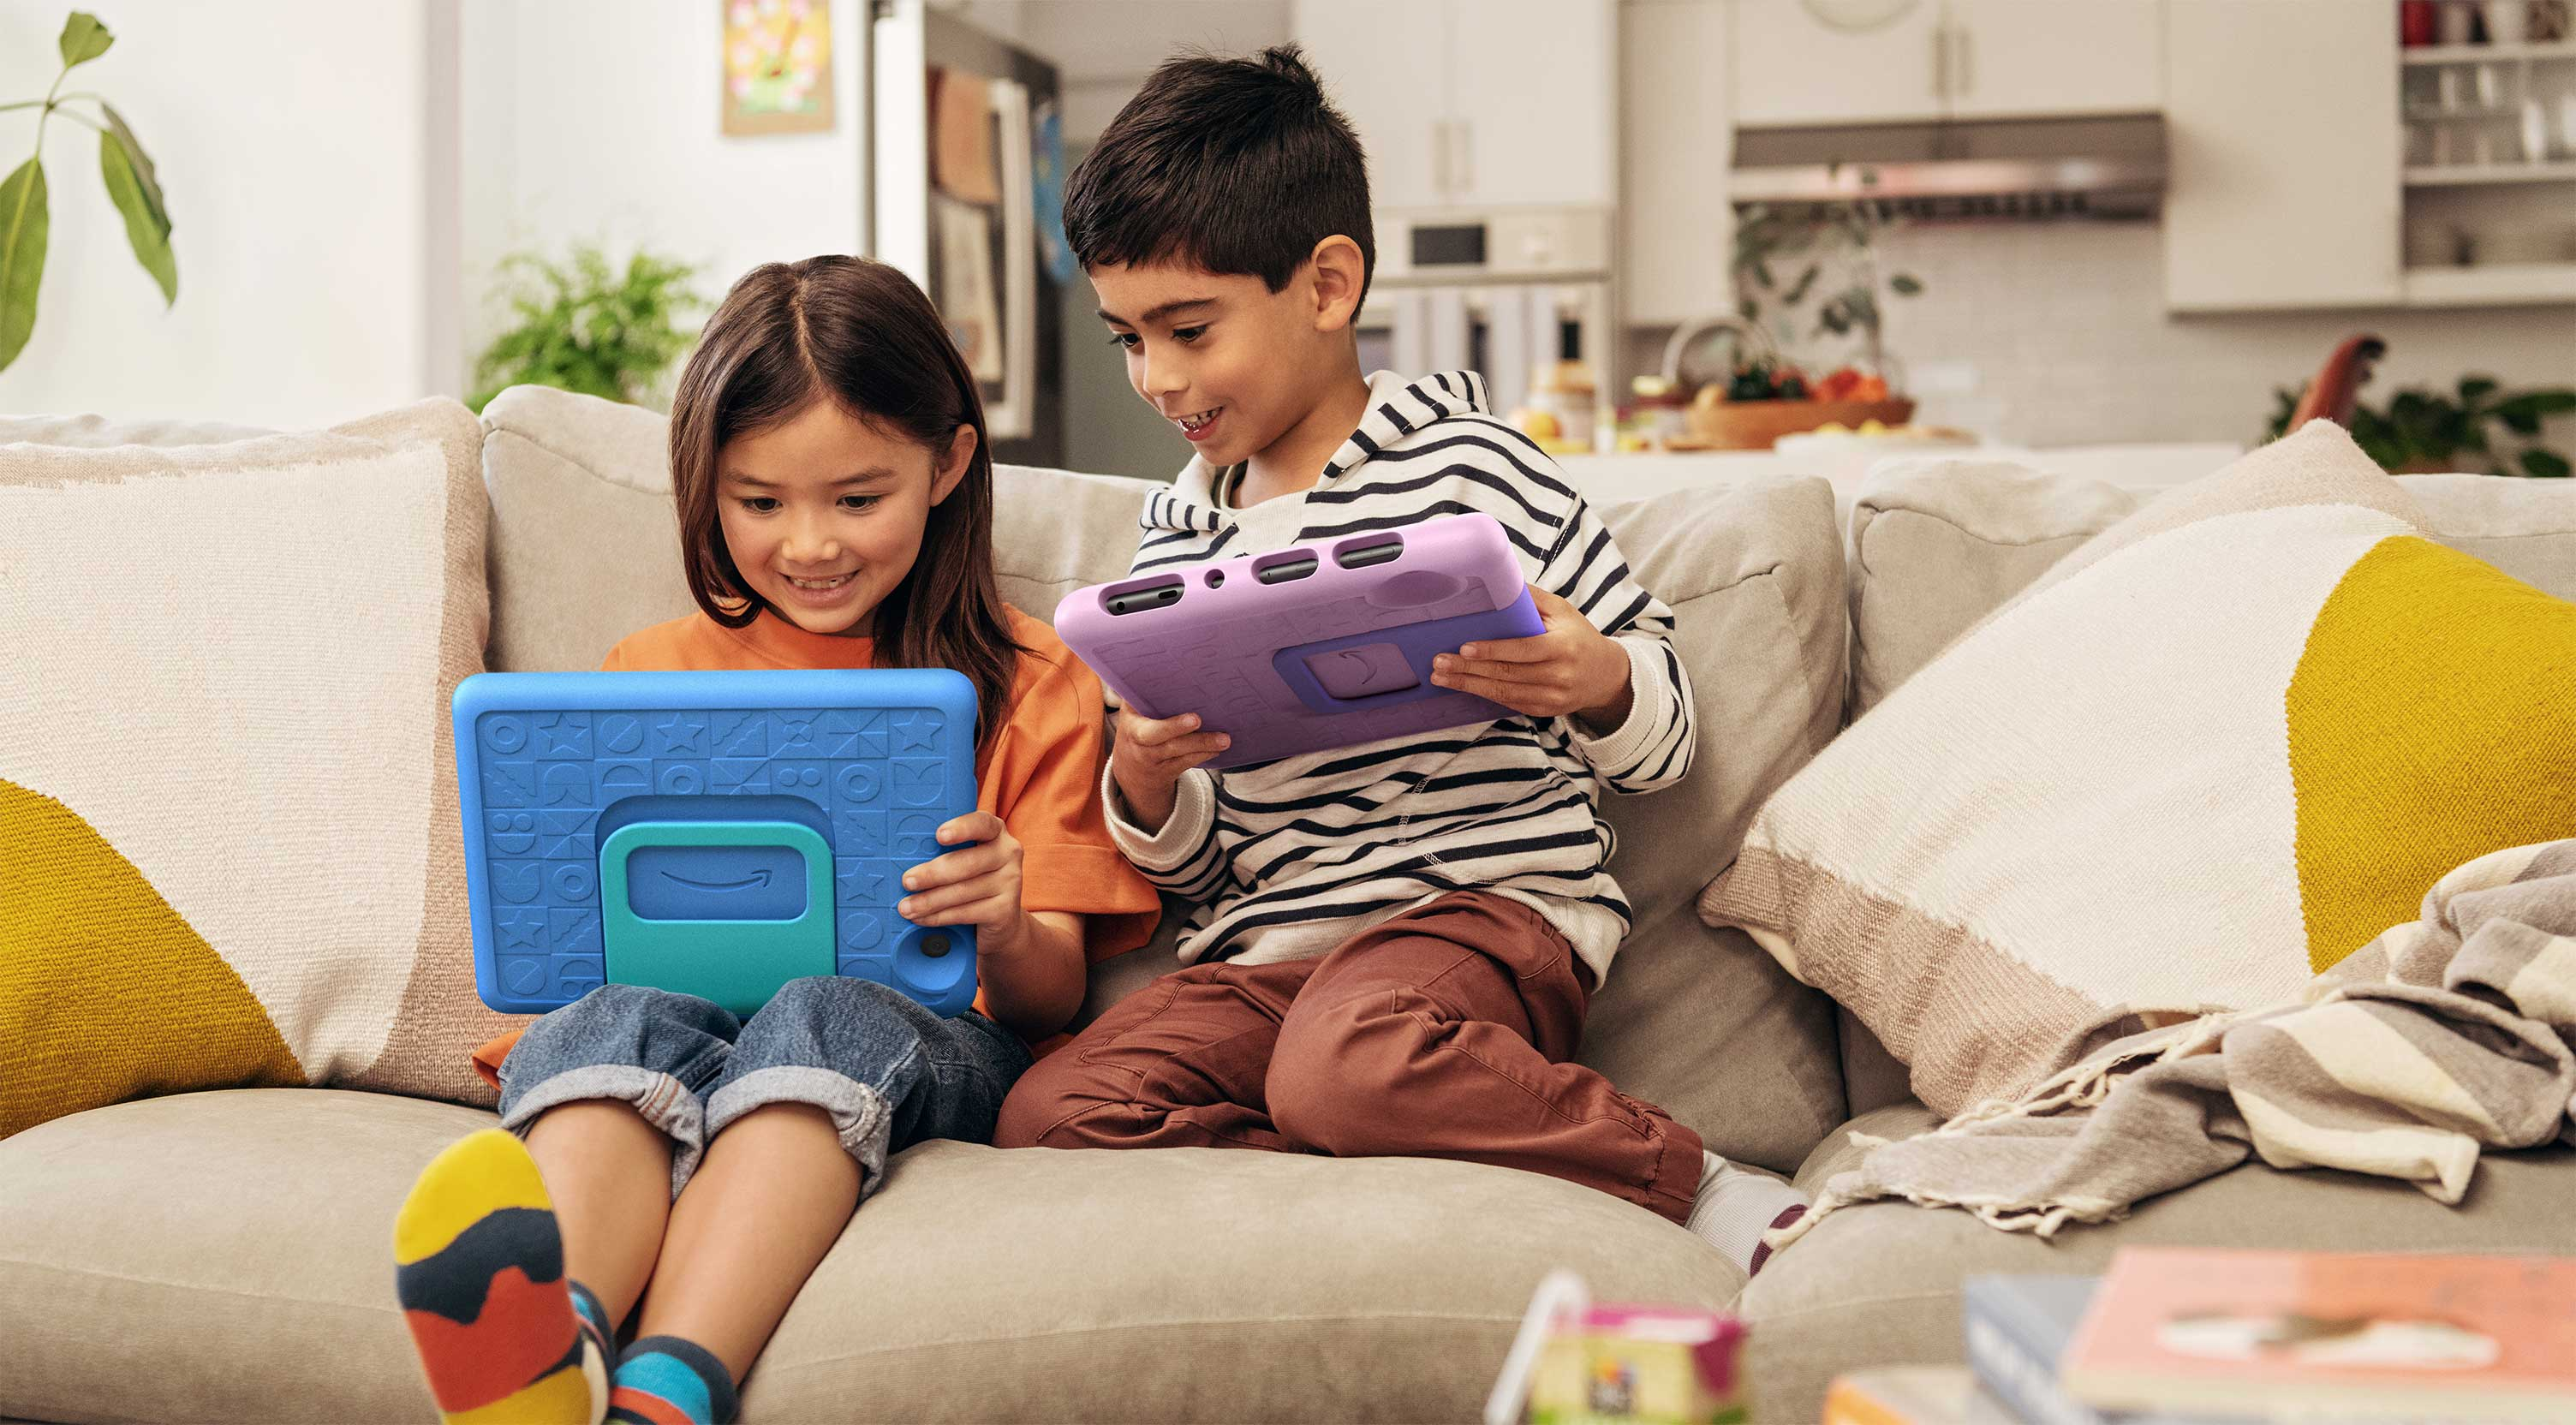 Two smiling children seated on a couch, each using their Fire HD 10 tablets.